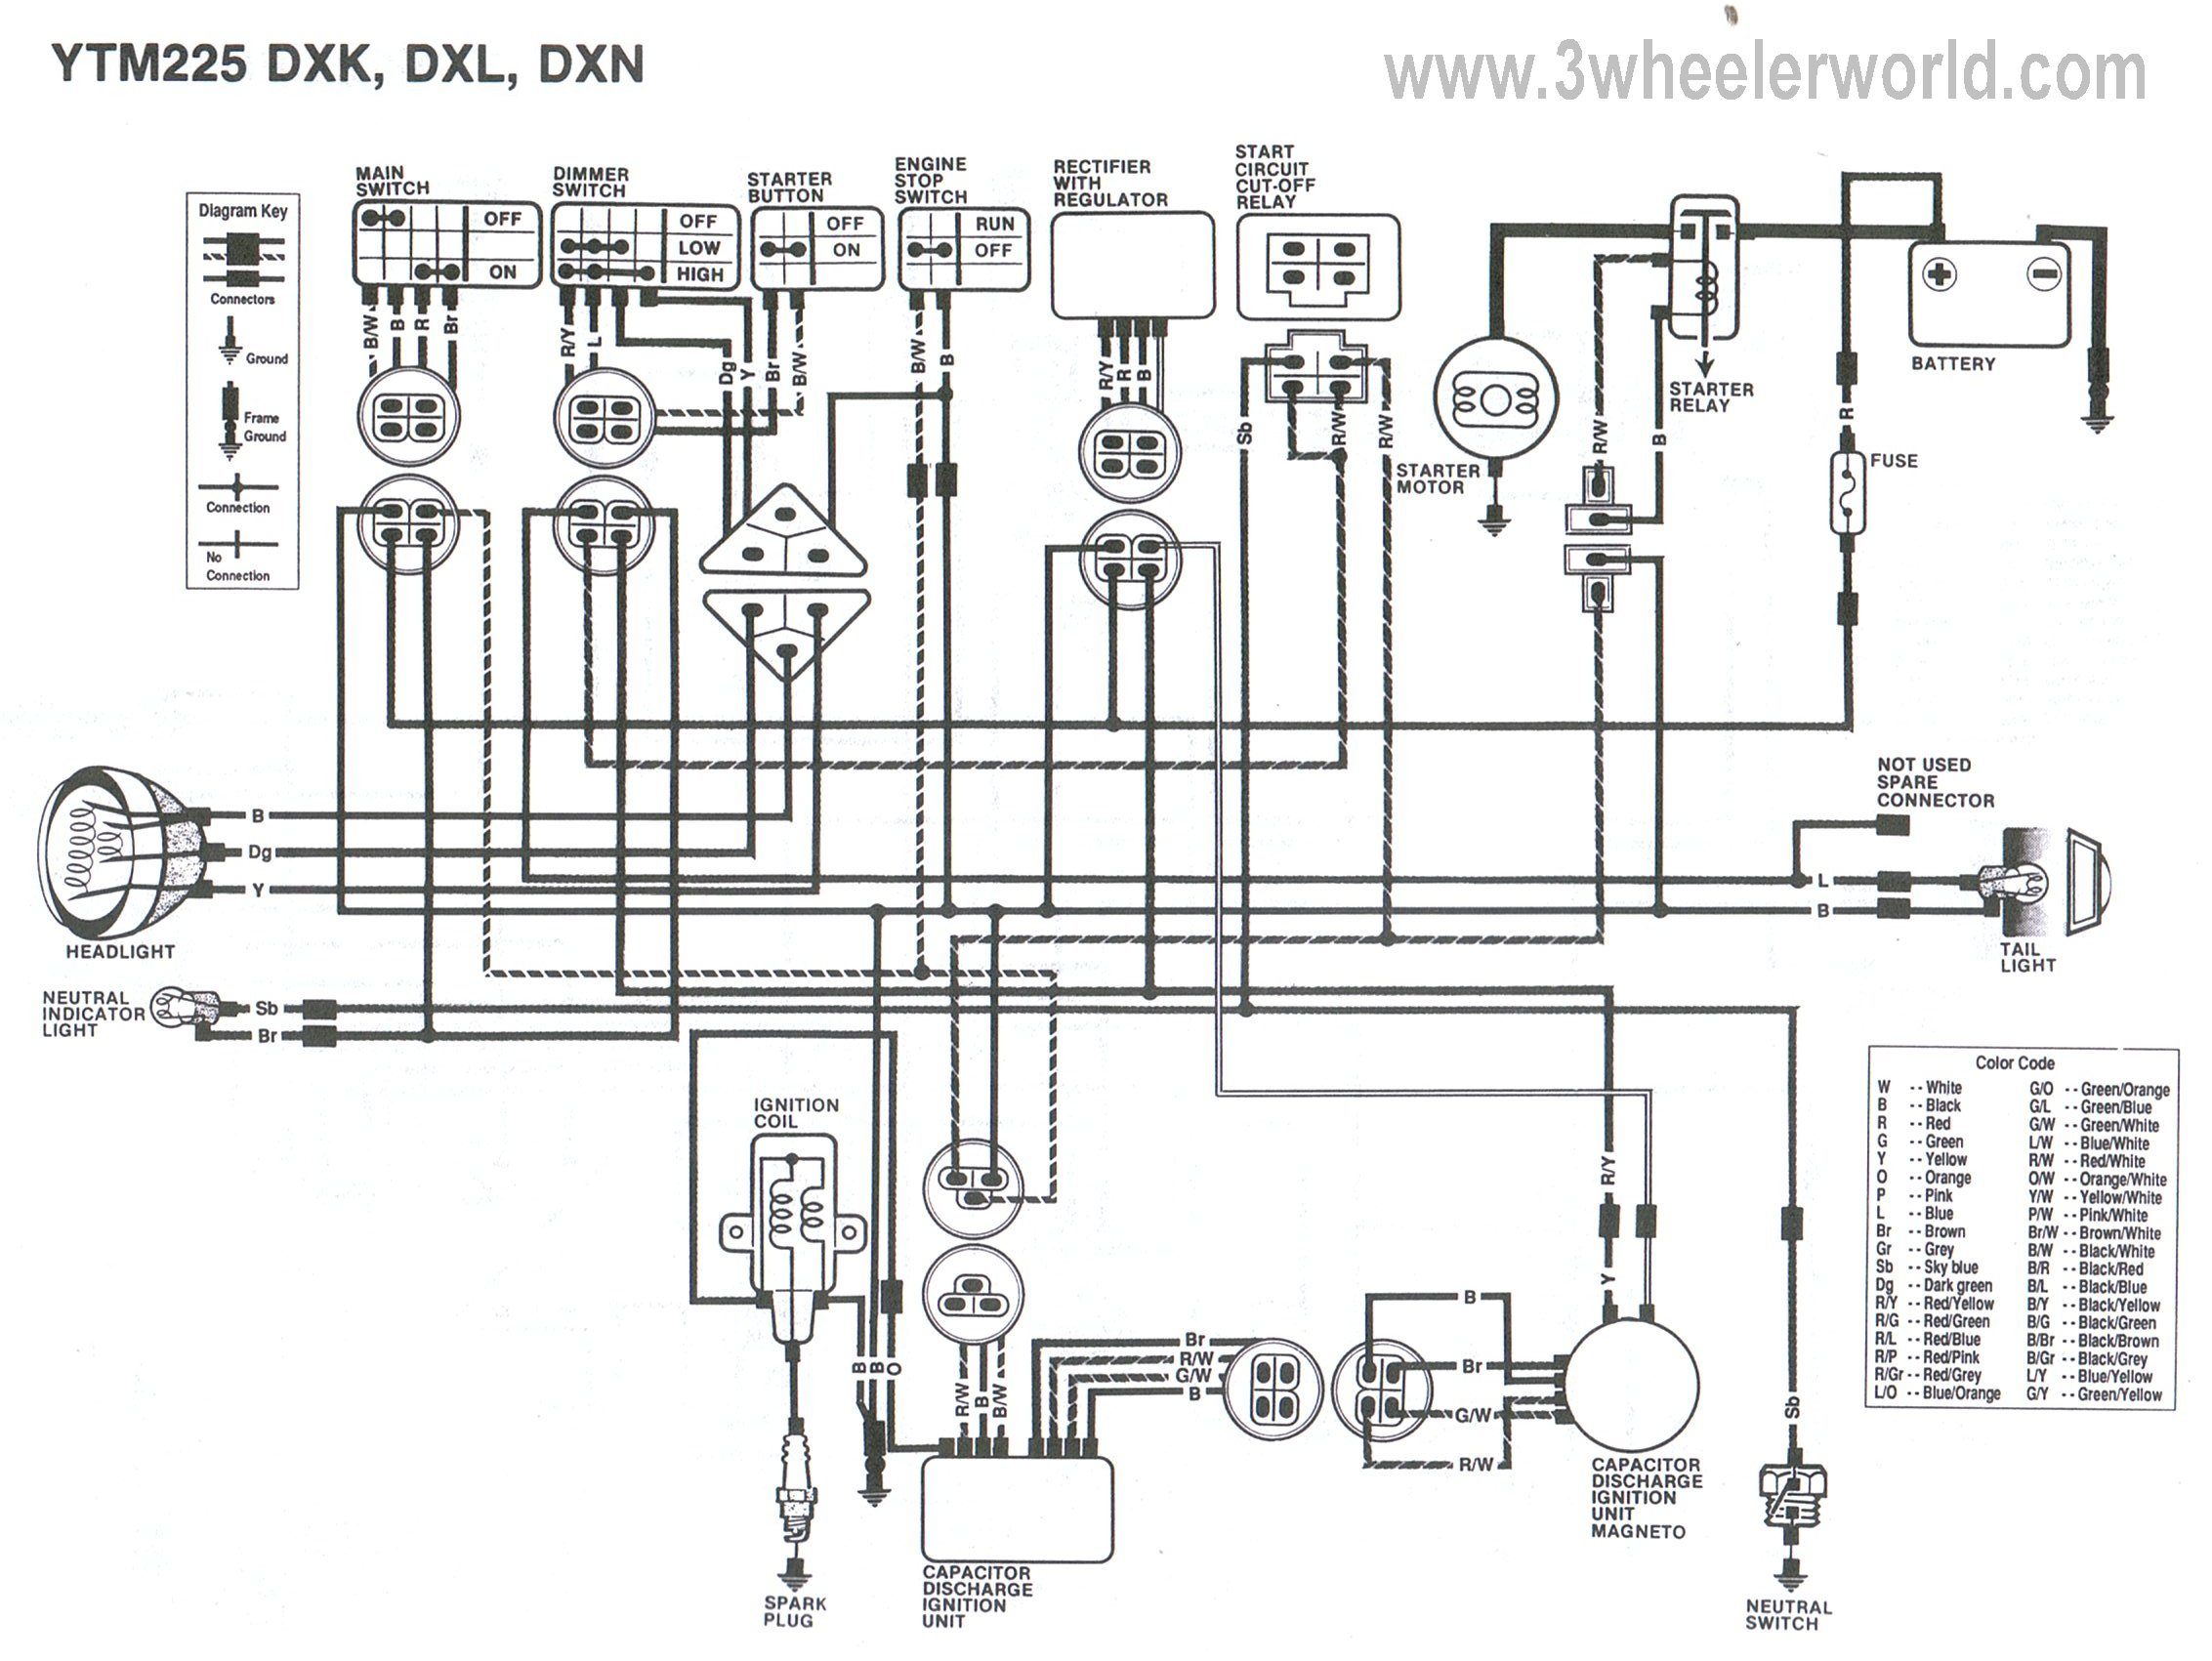 YTM225DXKDXLDXN yamaha wiring diagram wiring diagram and schematic design Suzuki Wire at honlapkeszites.co